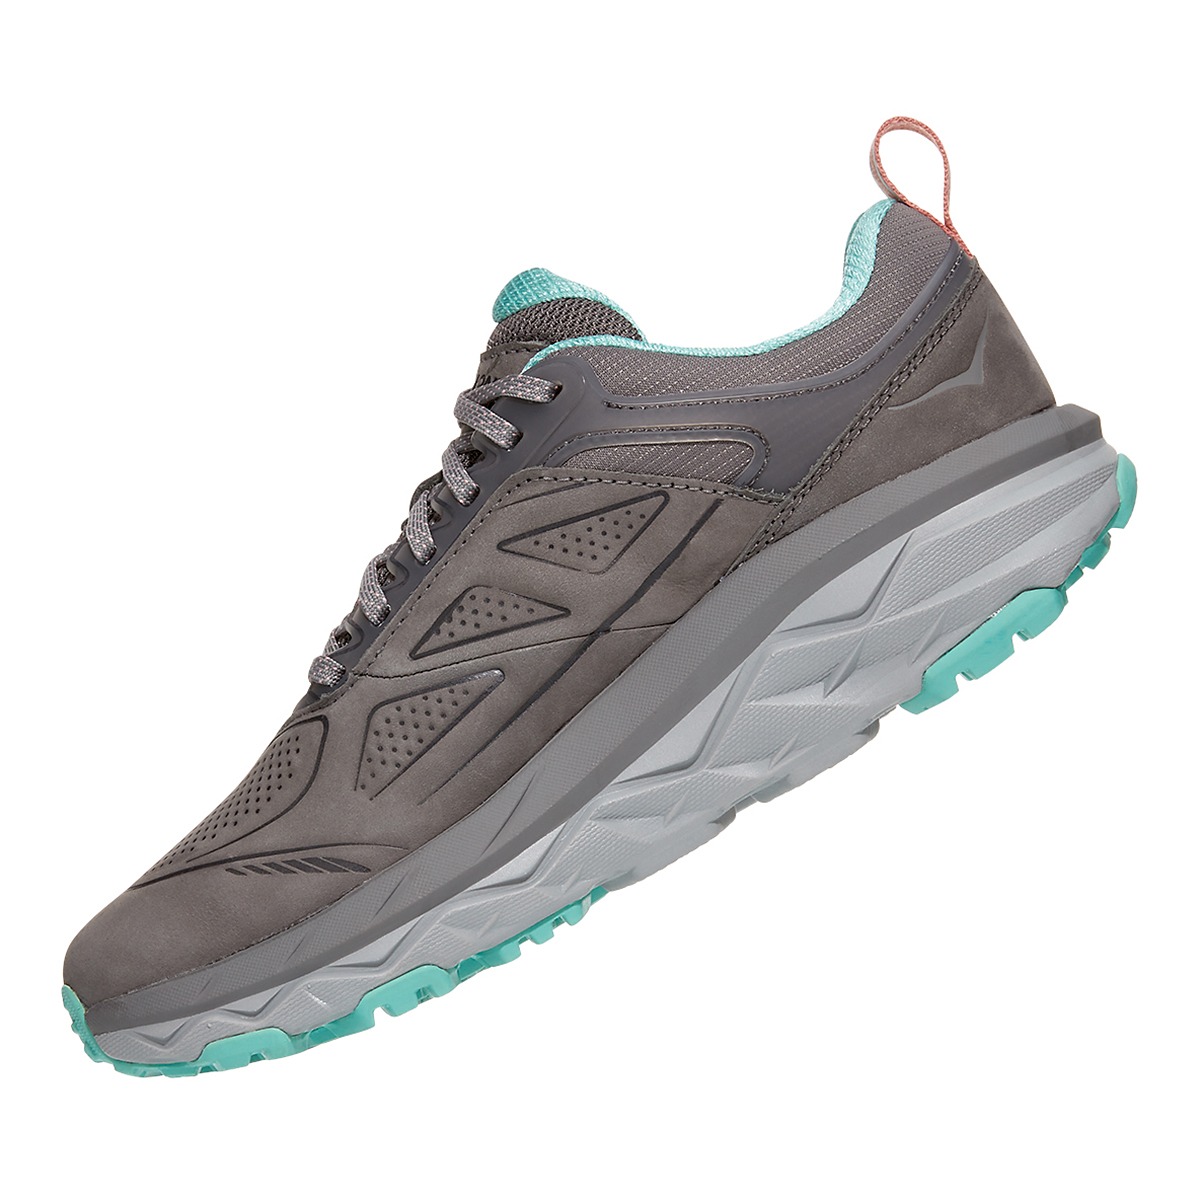 Women's Hoka One One Challenger Low Gore-Tex Trail Running Shoe, , large, image 4